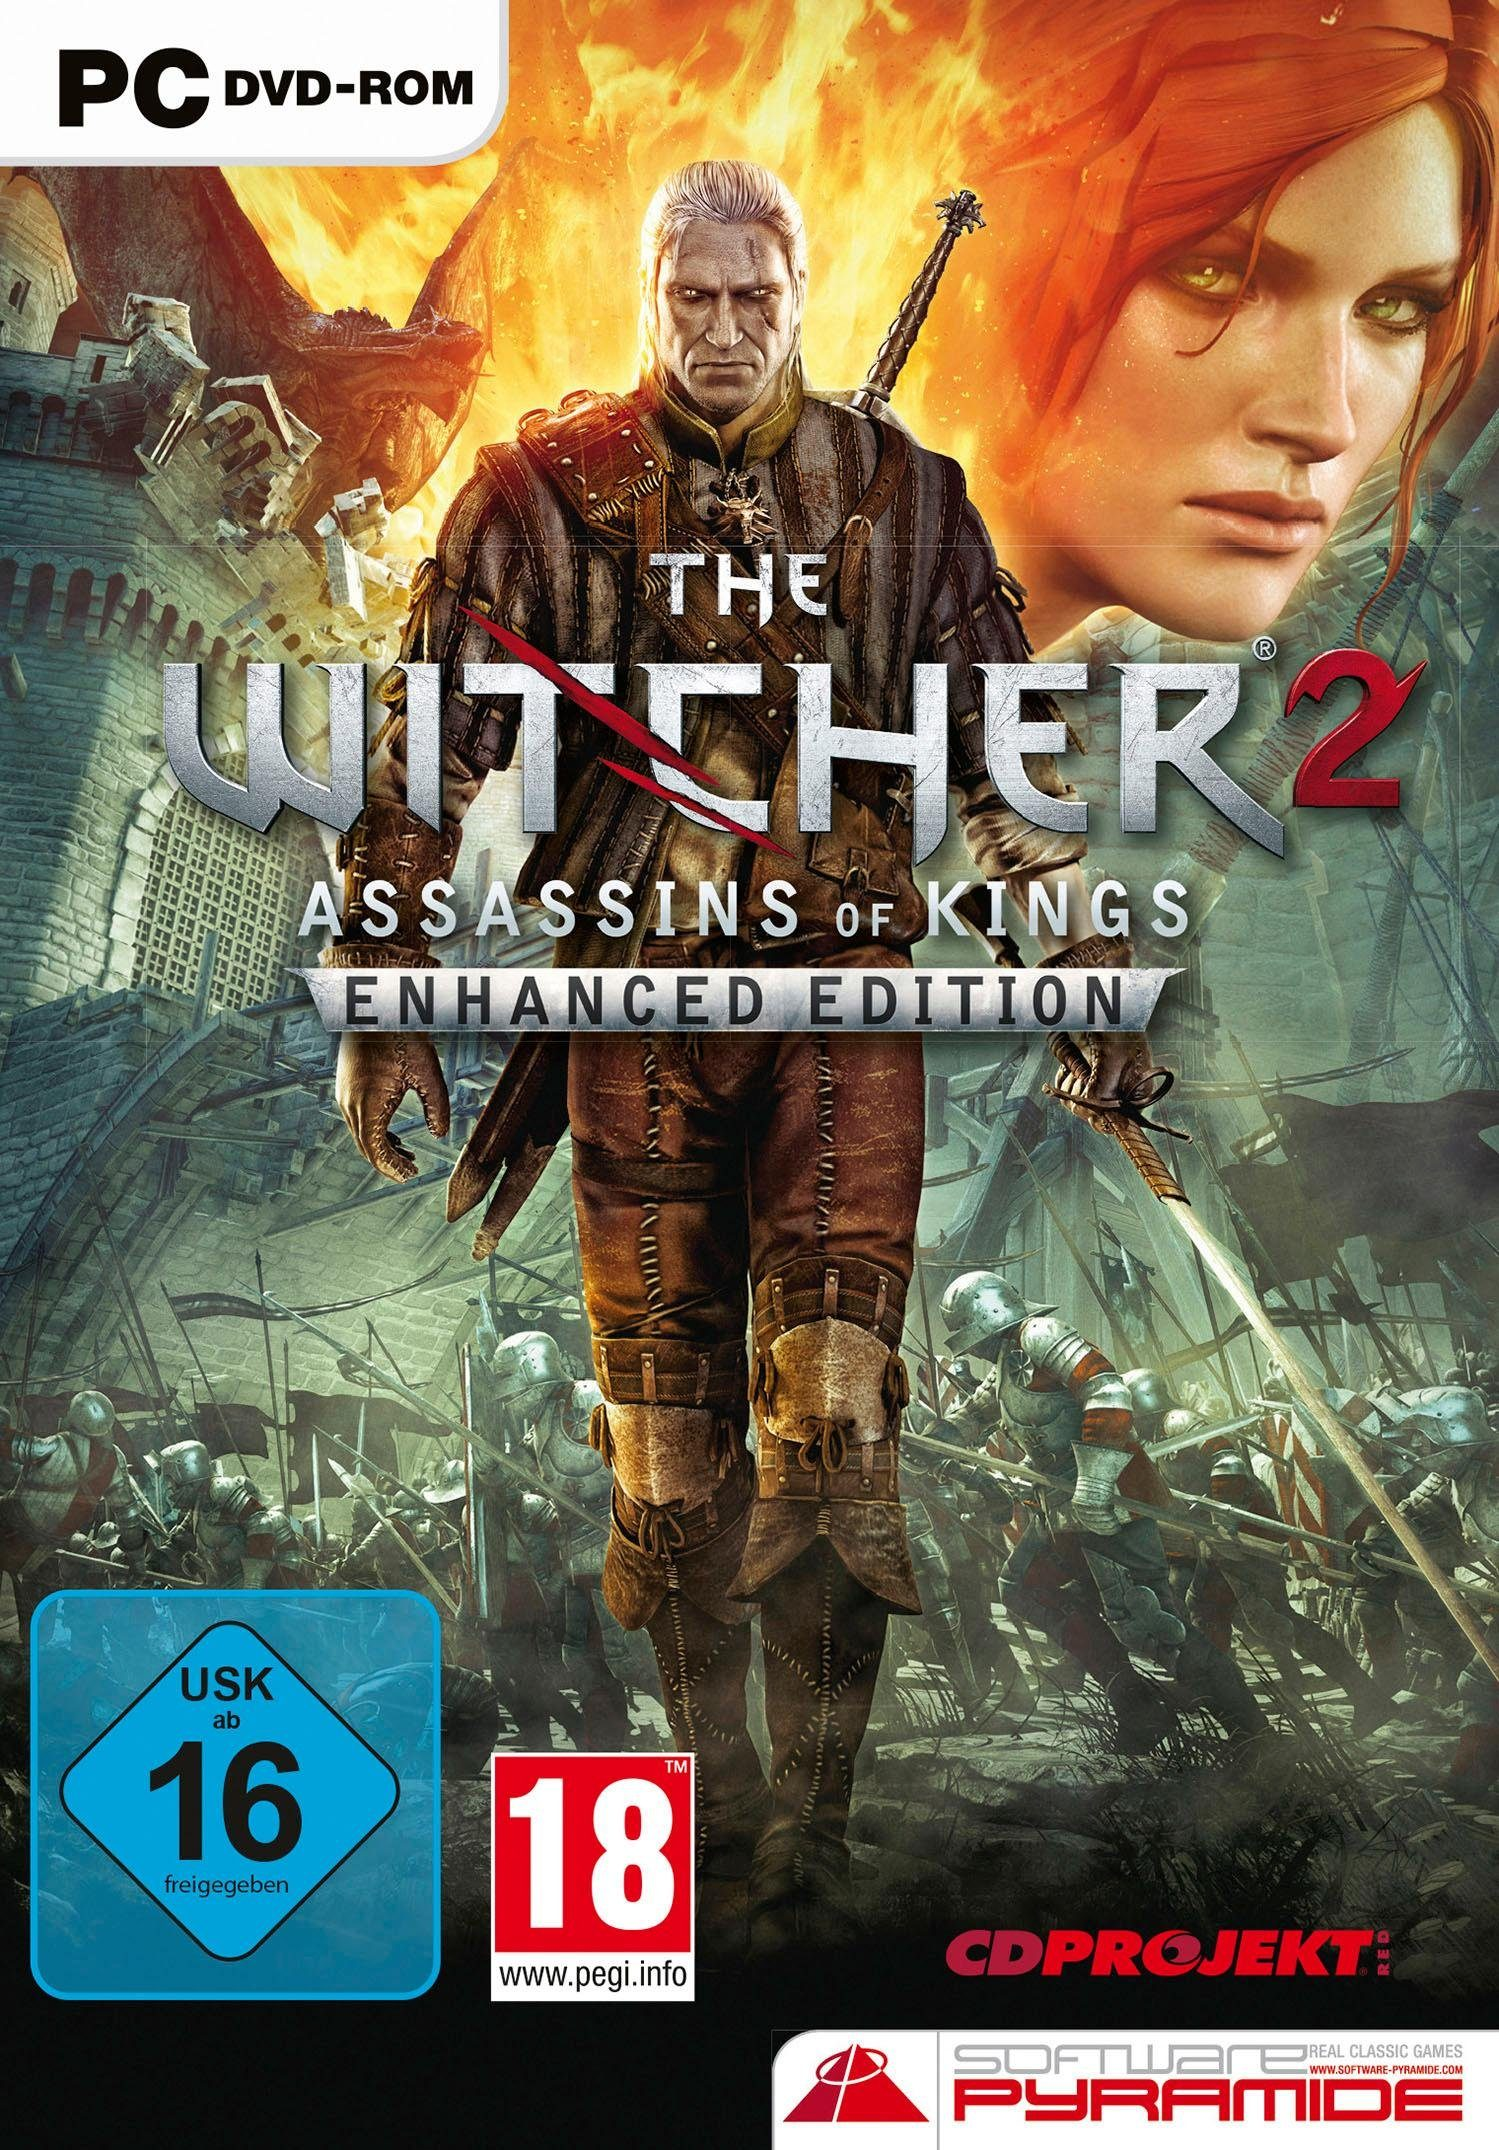 The Witcher 2: Assassins of Kings - Enhanced Edition PC, Software Pyramide